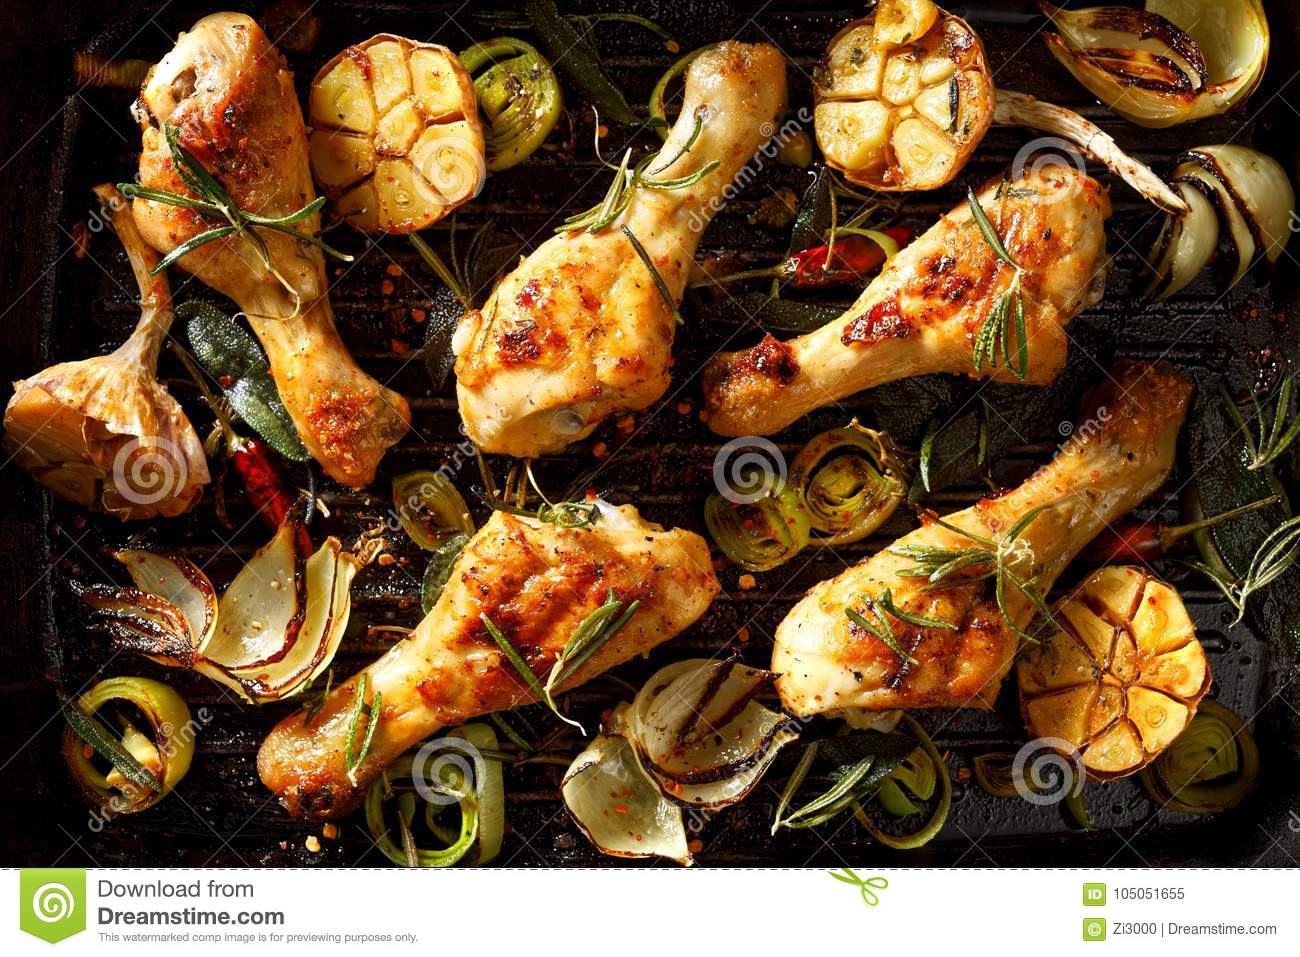 Grilled chicken legs with addition of aromatic rosemary, garlic, onion, leek and spices on a grill plate